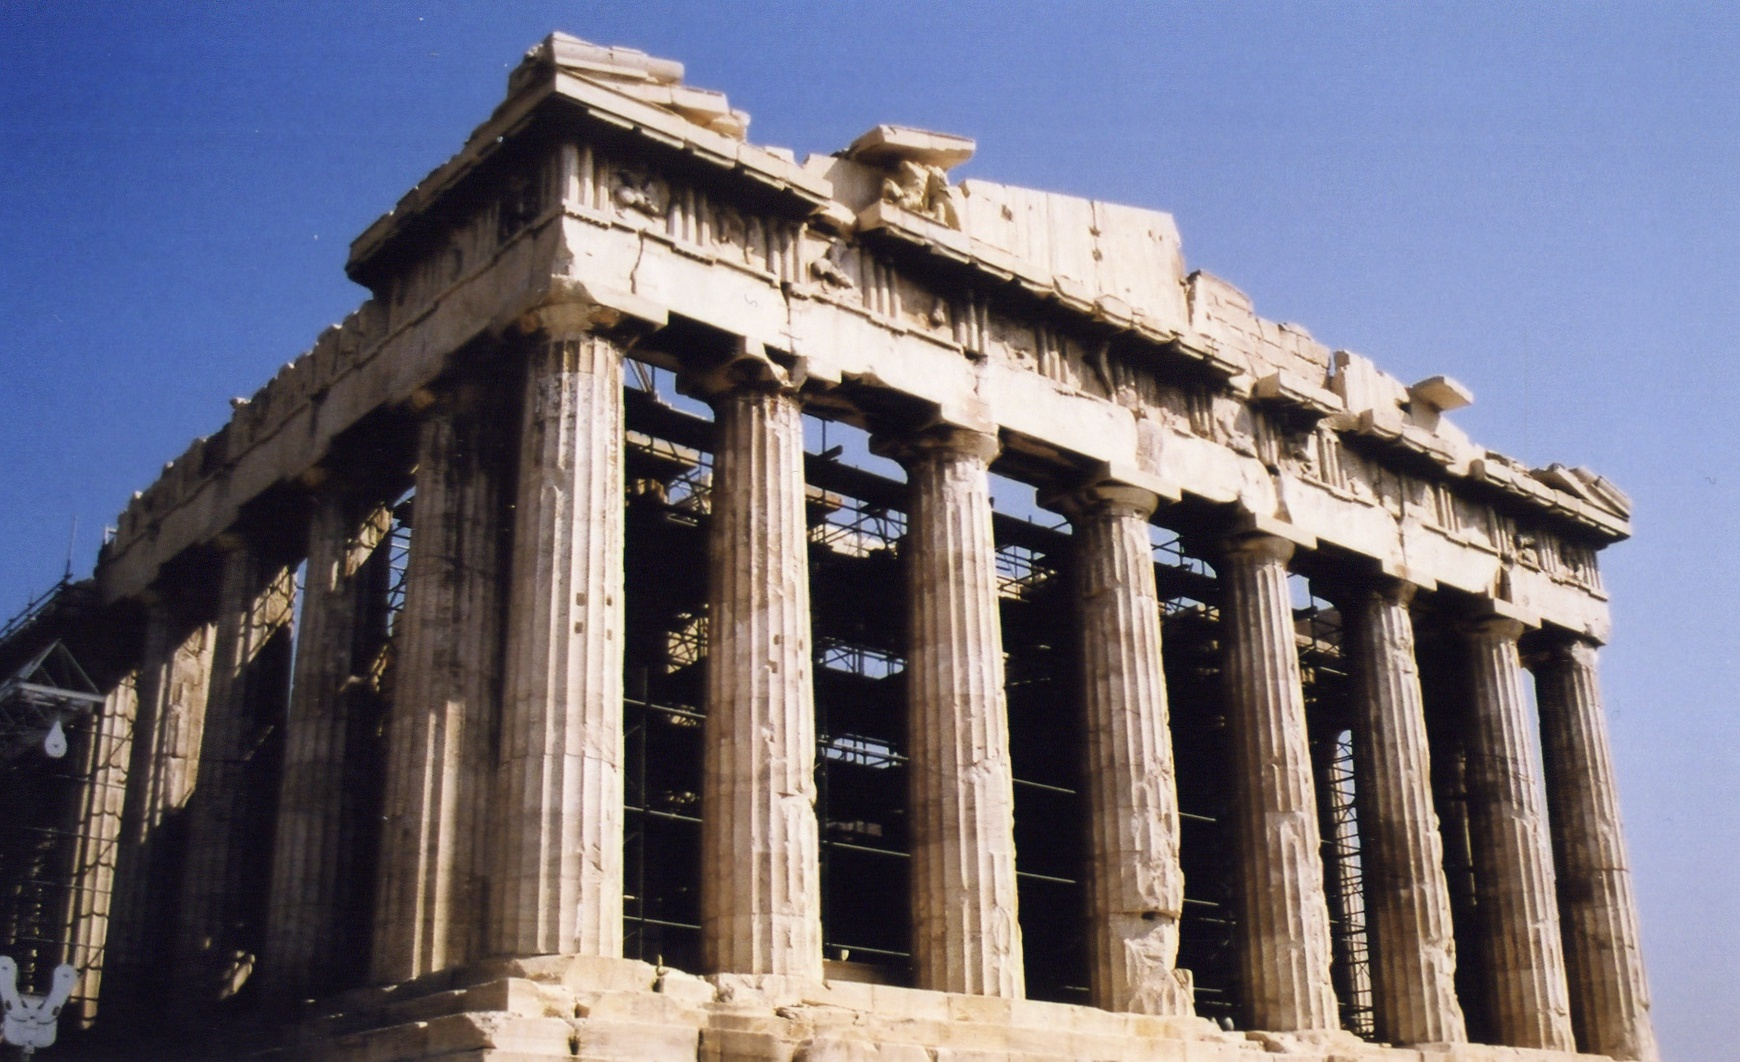 https://i2.wp.com/upload.wikimedia.org/wikipedia/commons/3/37/Acropolis_of_Athens_01361.JPG